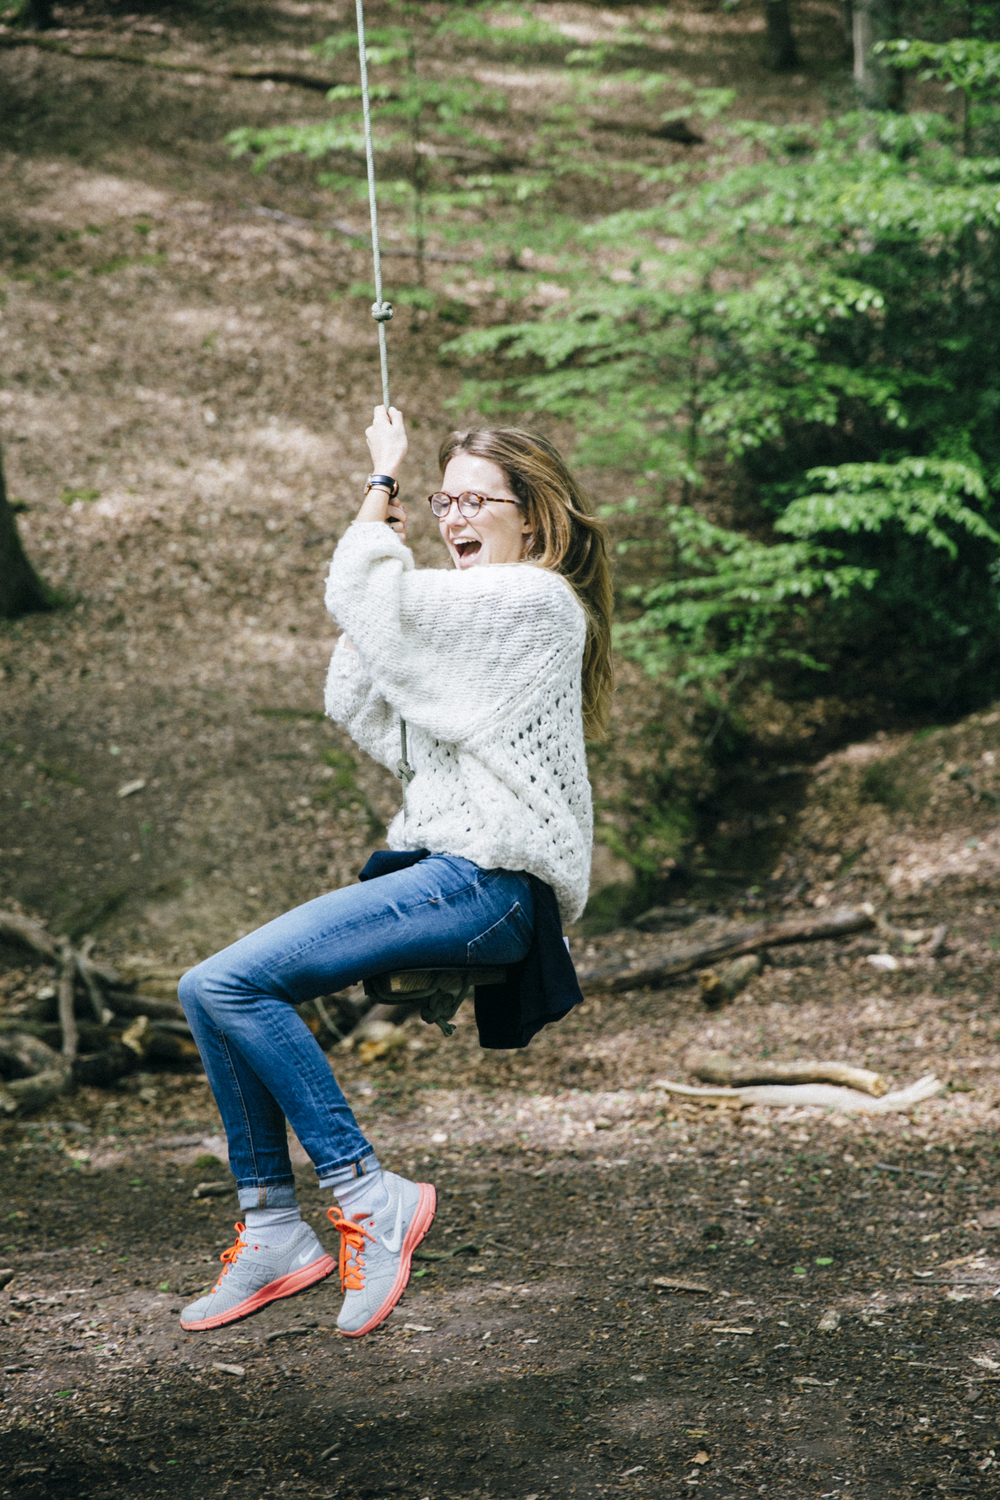 forest-walks-rope-swing.jpg